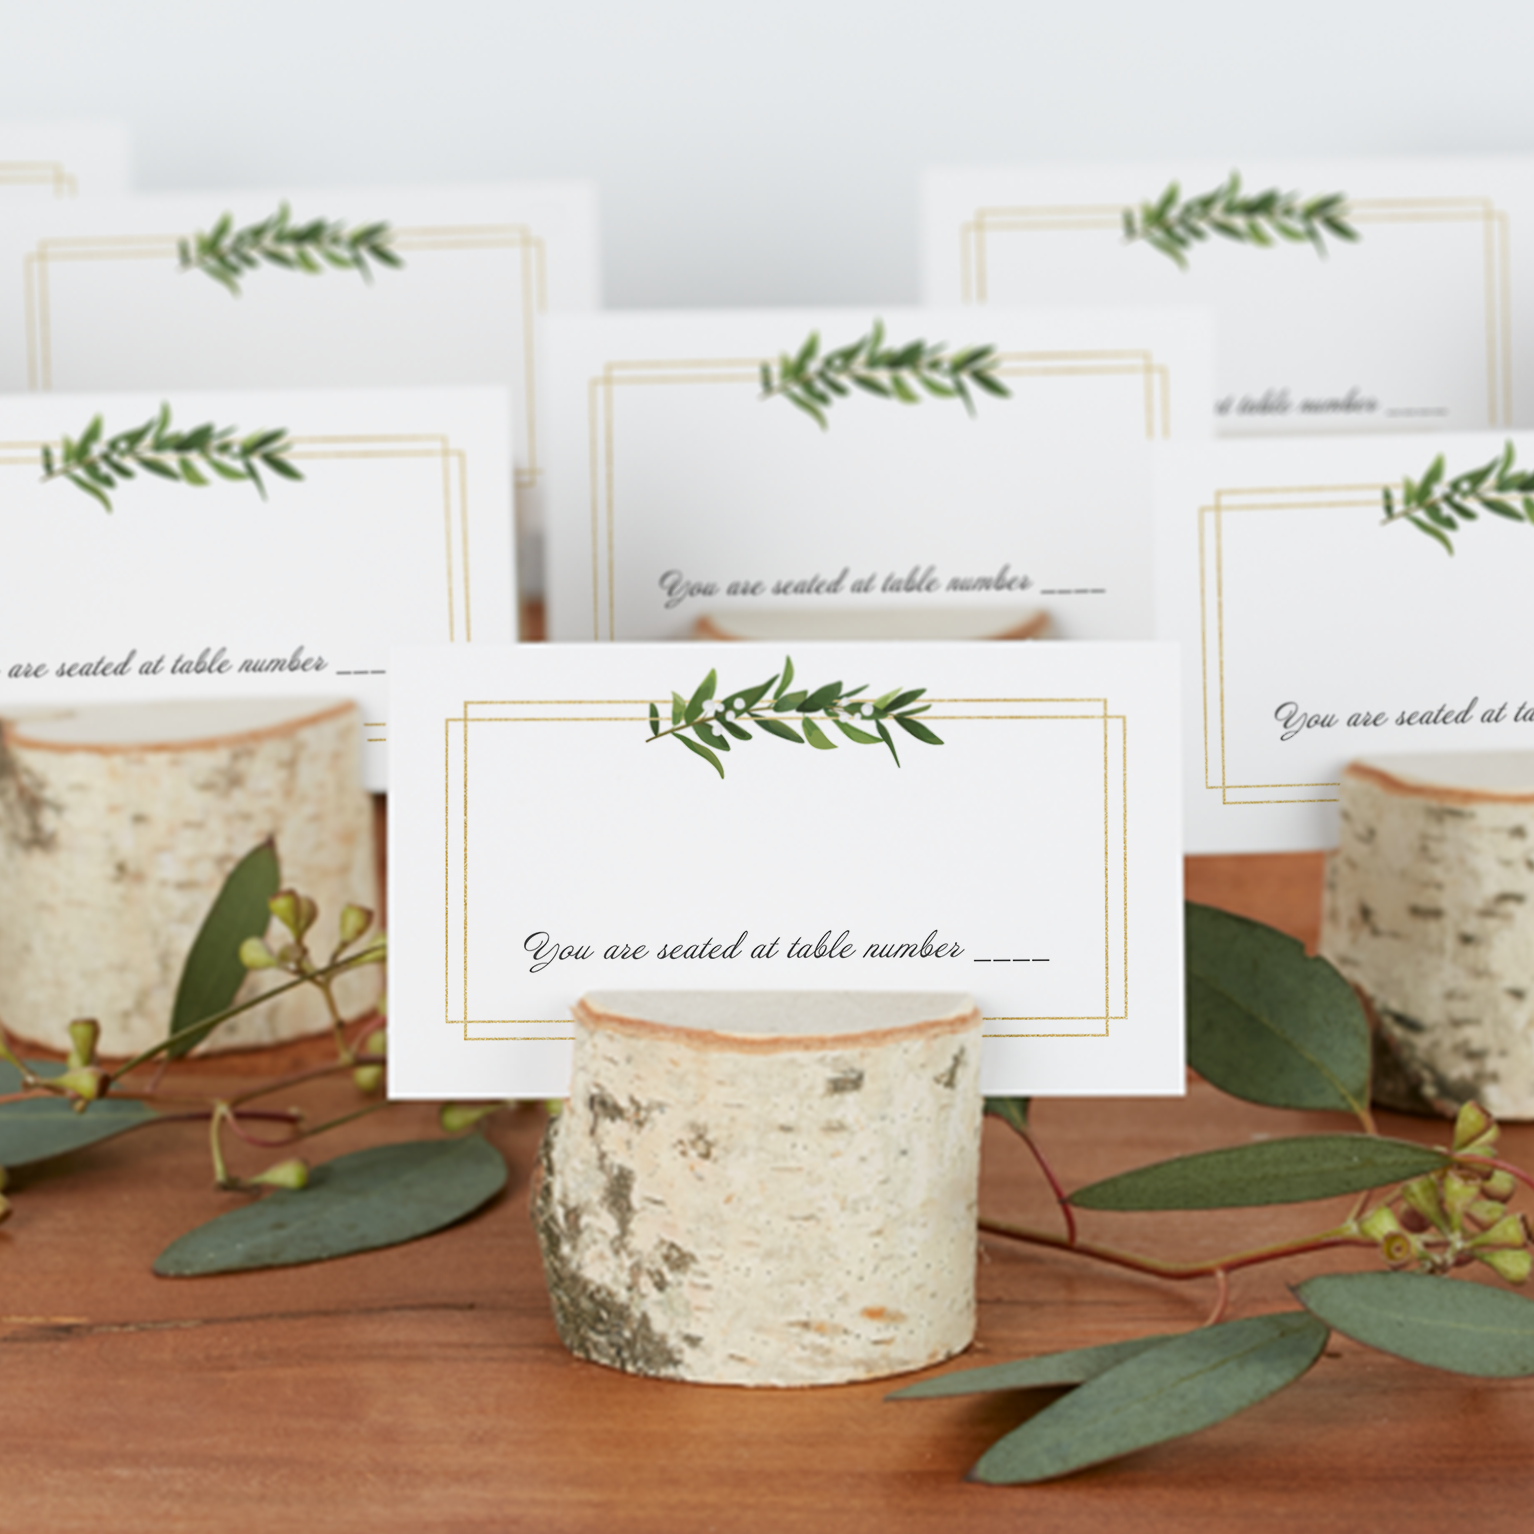 Wedding Place Cards Custom place cards